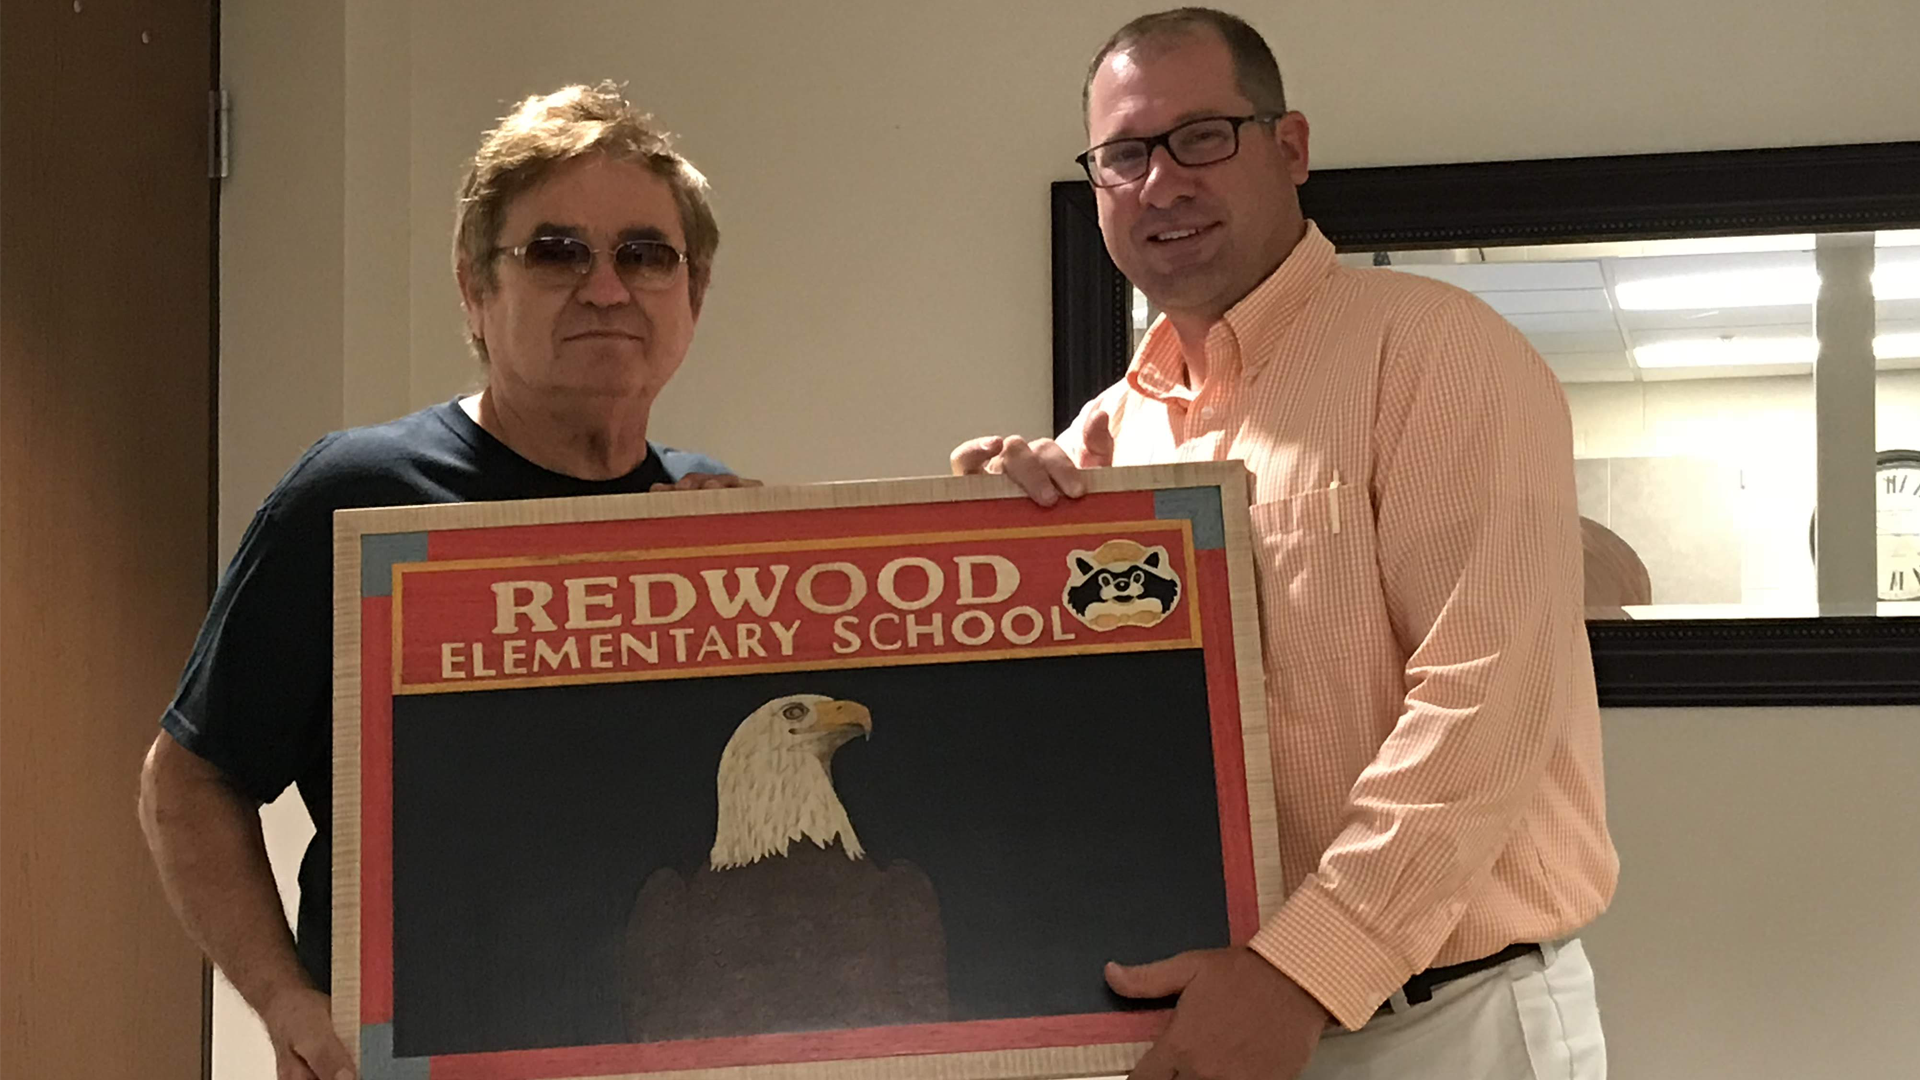 Mr. Ebert and Redwood Sign